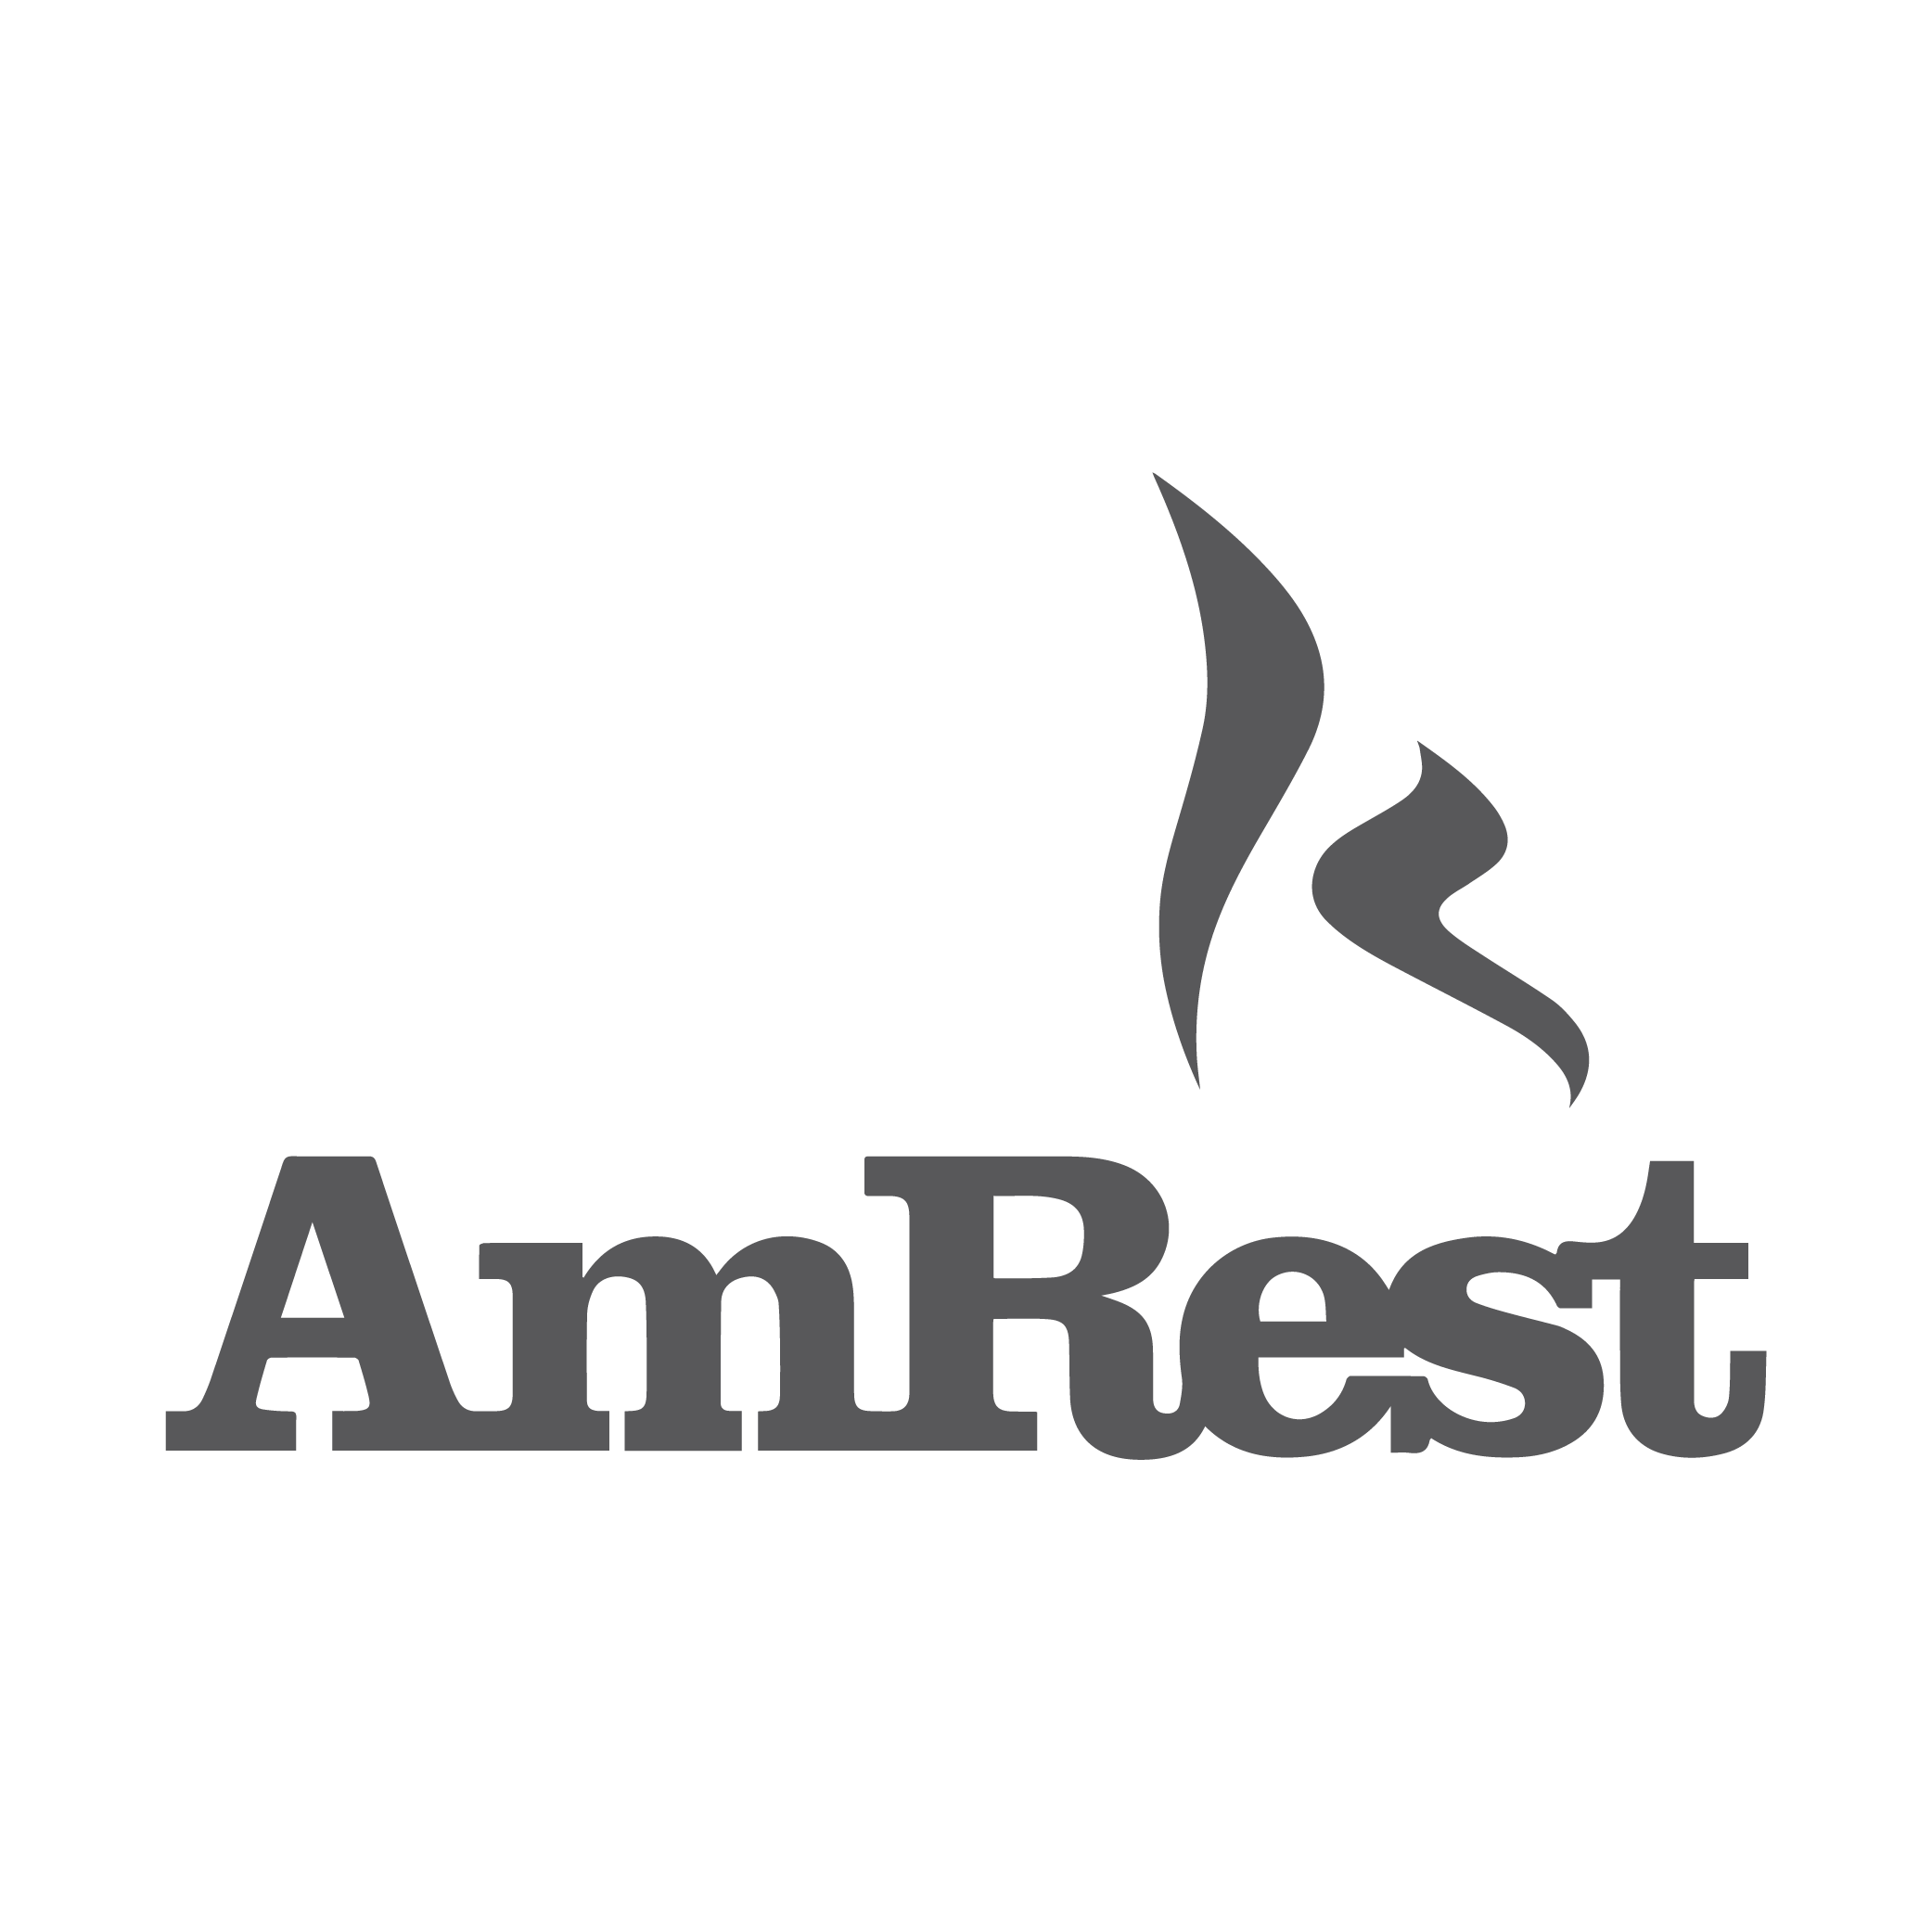 AmRest logo